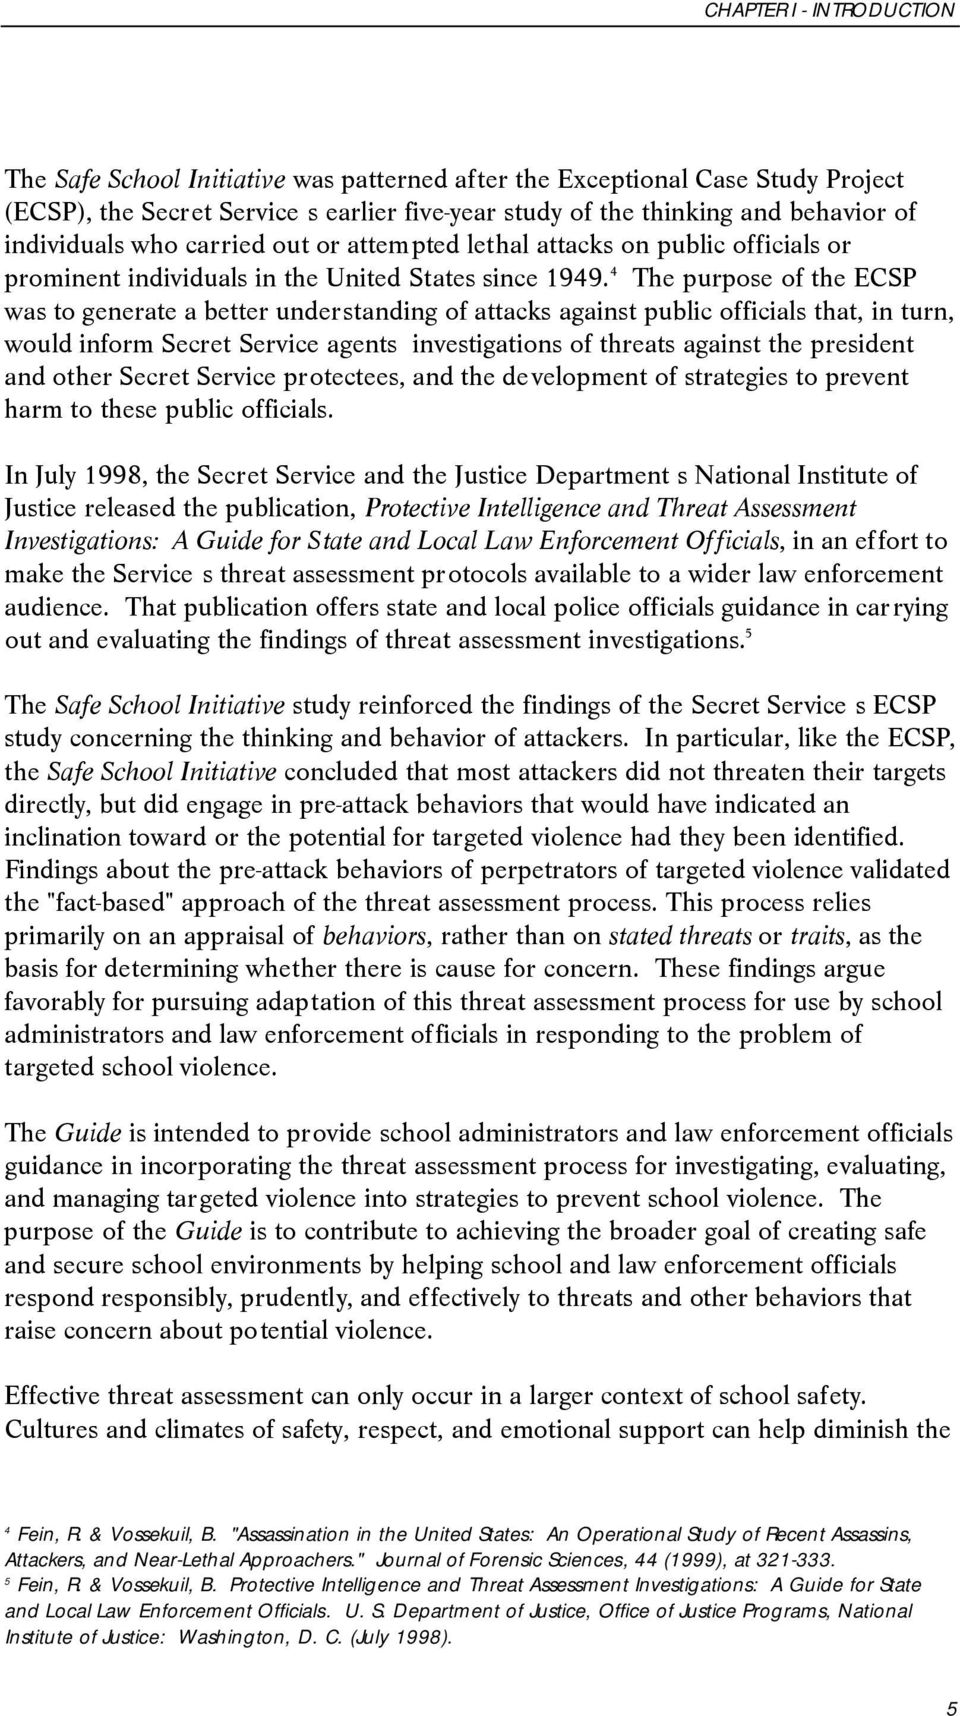 4 The purpose of the ECSP was to generate a better understanding of attacks against public officials that, in turn, would inform Secret Service agents investigations of threats against the president